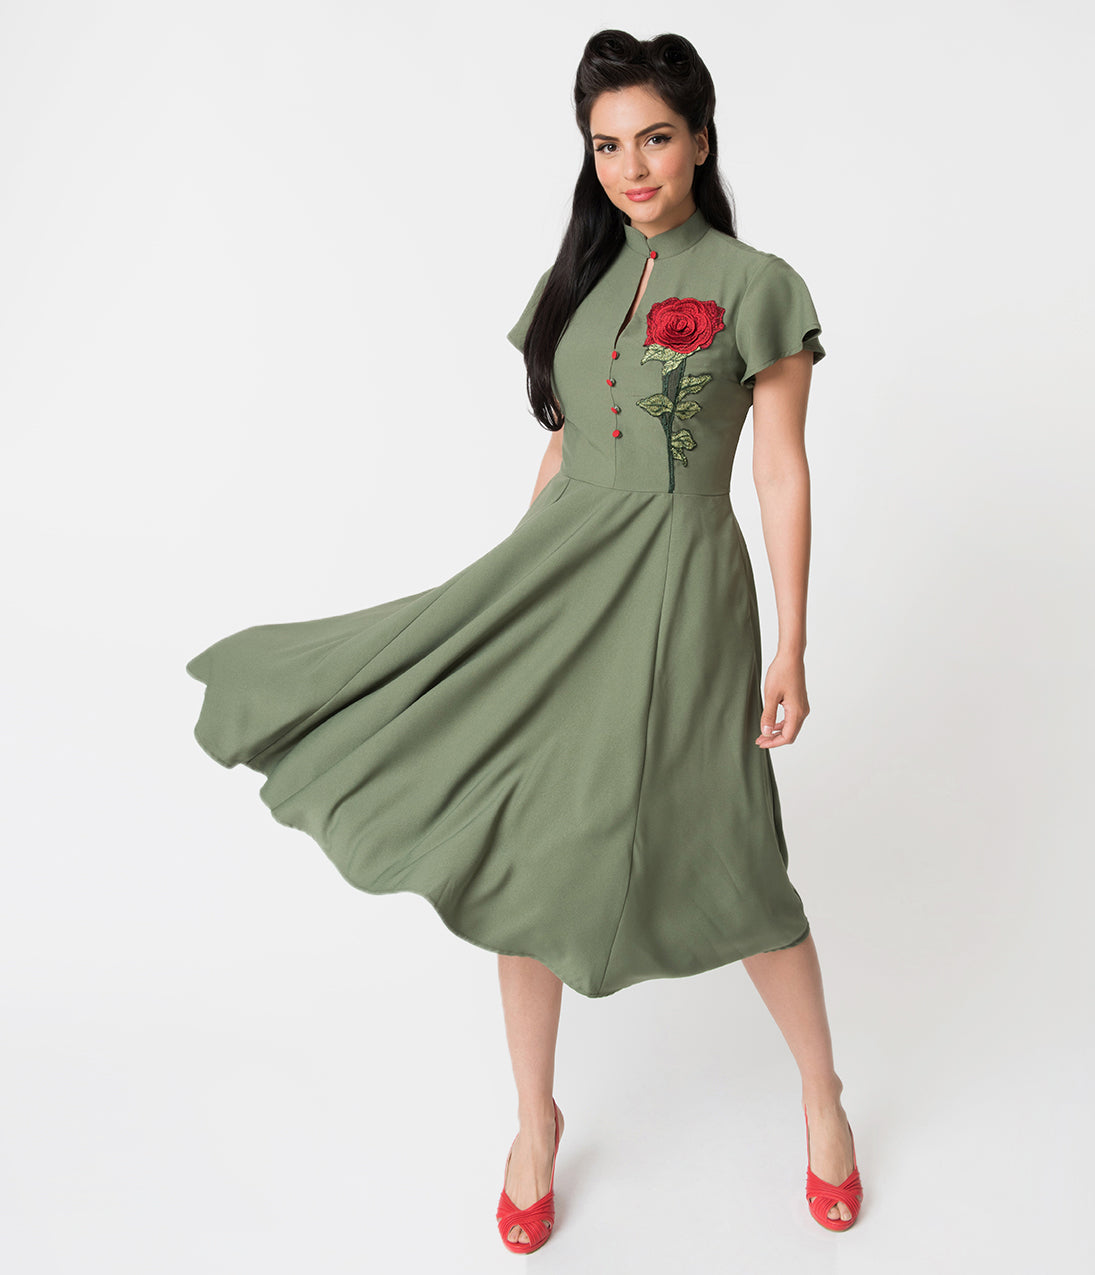 1950s Dresses, 50s Dresses | 1950s Style Dresses Unique Vintage 1950S Olive Green  Embroidered Red Rose Baltimore Swing Dress $98.00 AT vintagedancer.com